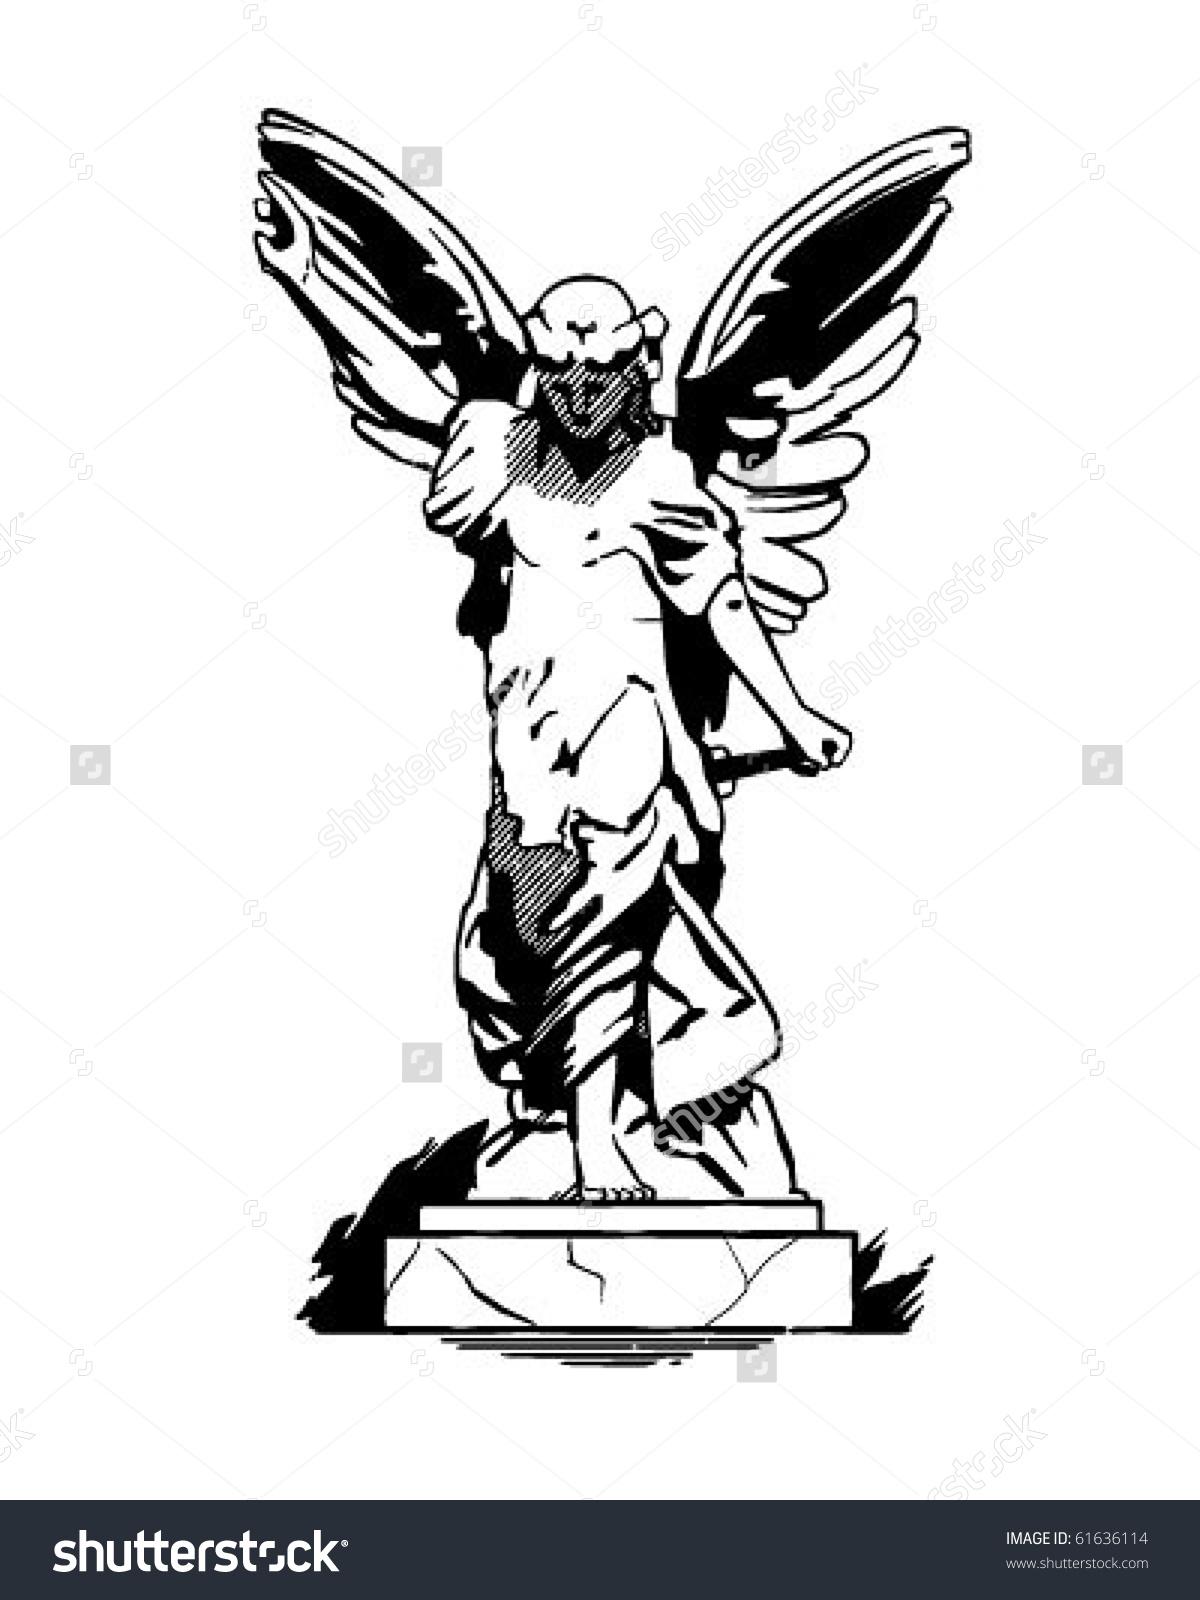 Angel Statue Retro Clip Art Stock Vector 61636114.